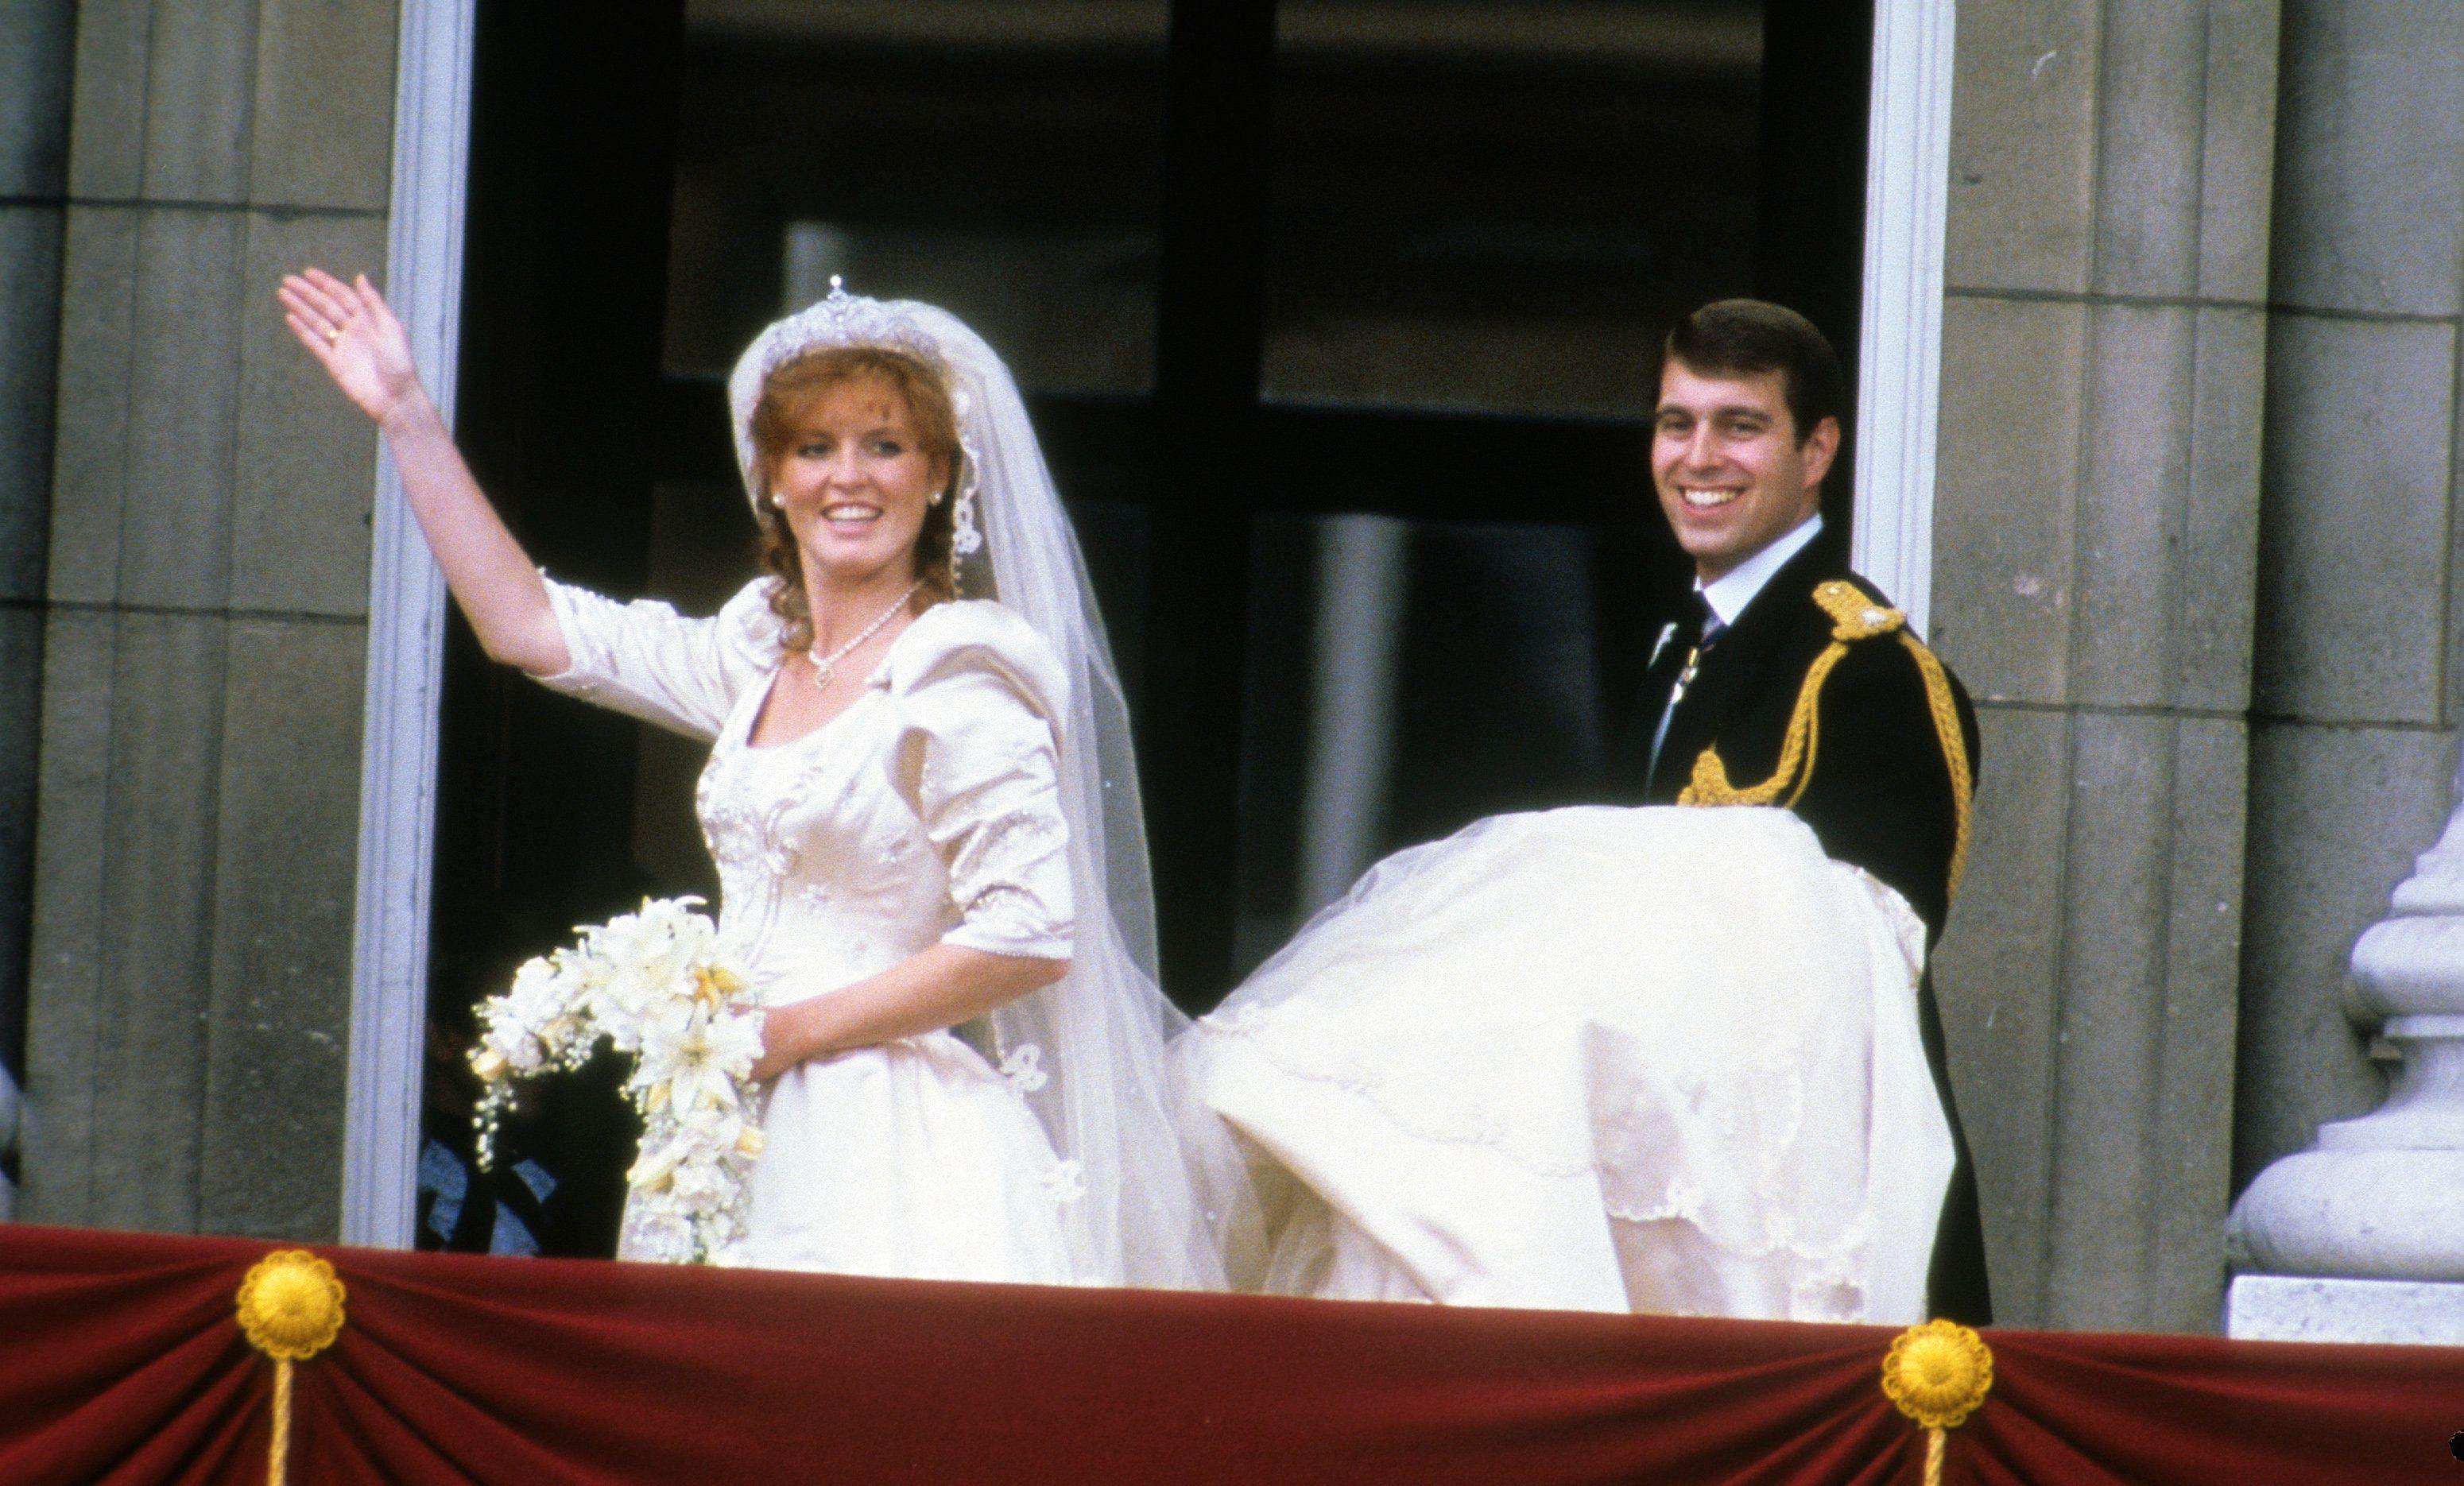 Sarah Ferguson has remained close to ex-husband Prince Andrew.